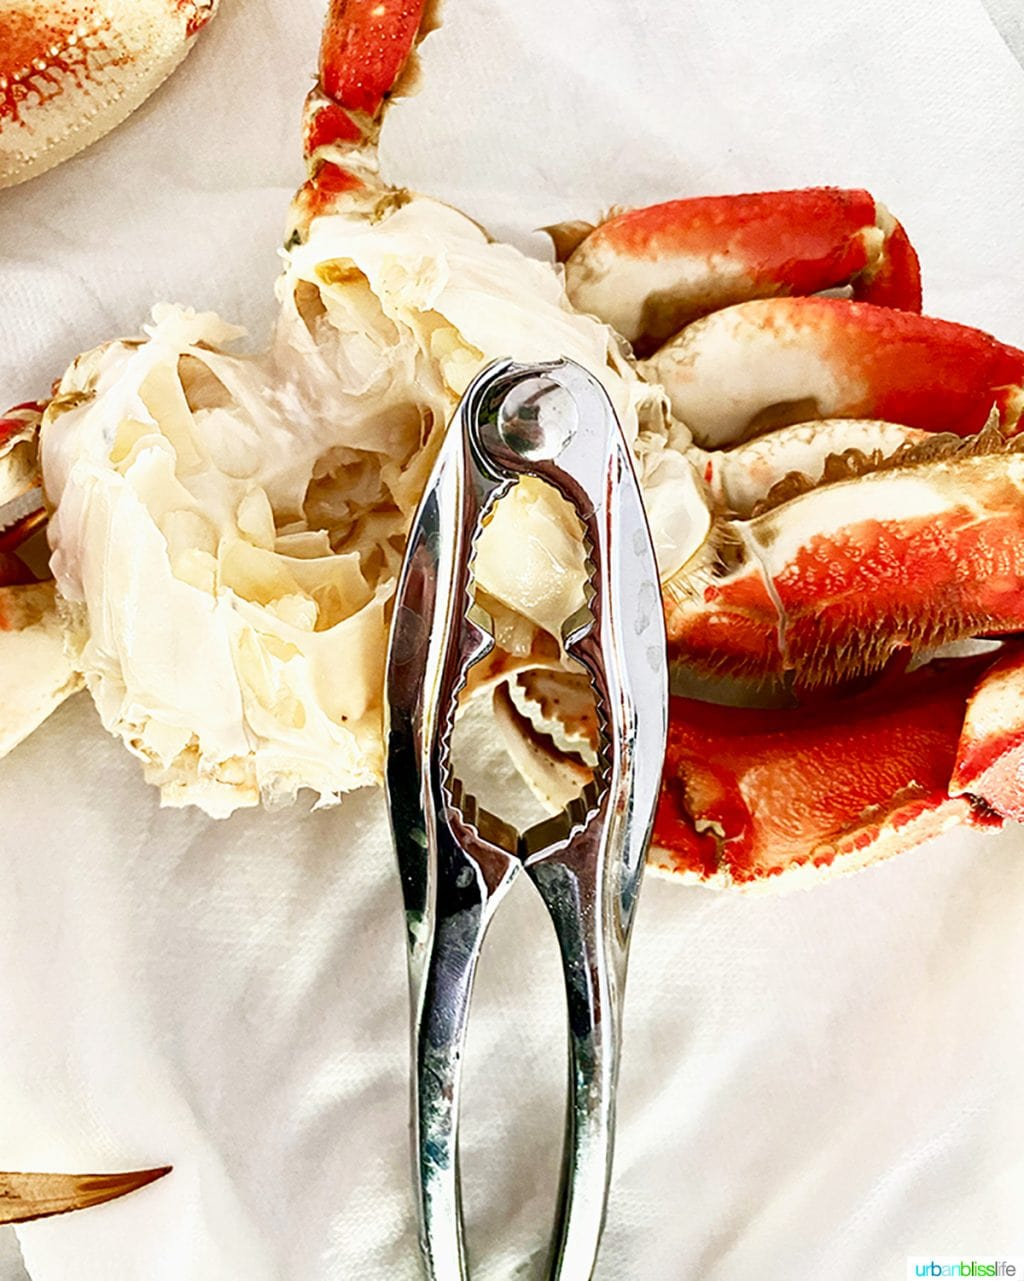 cracking crab with a seafood cracker